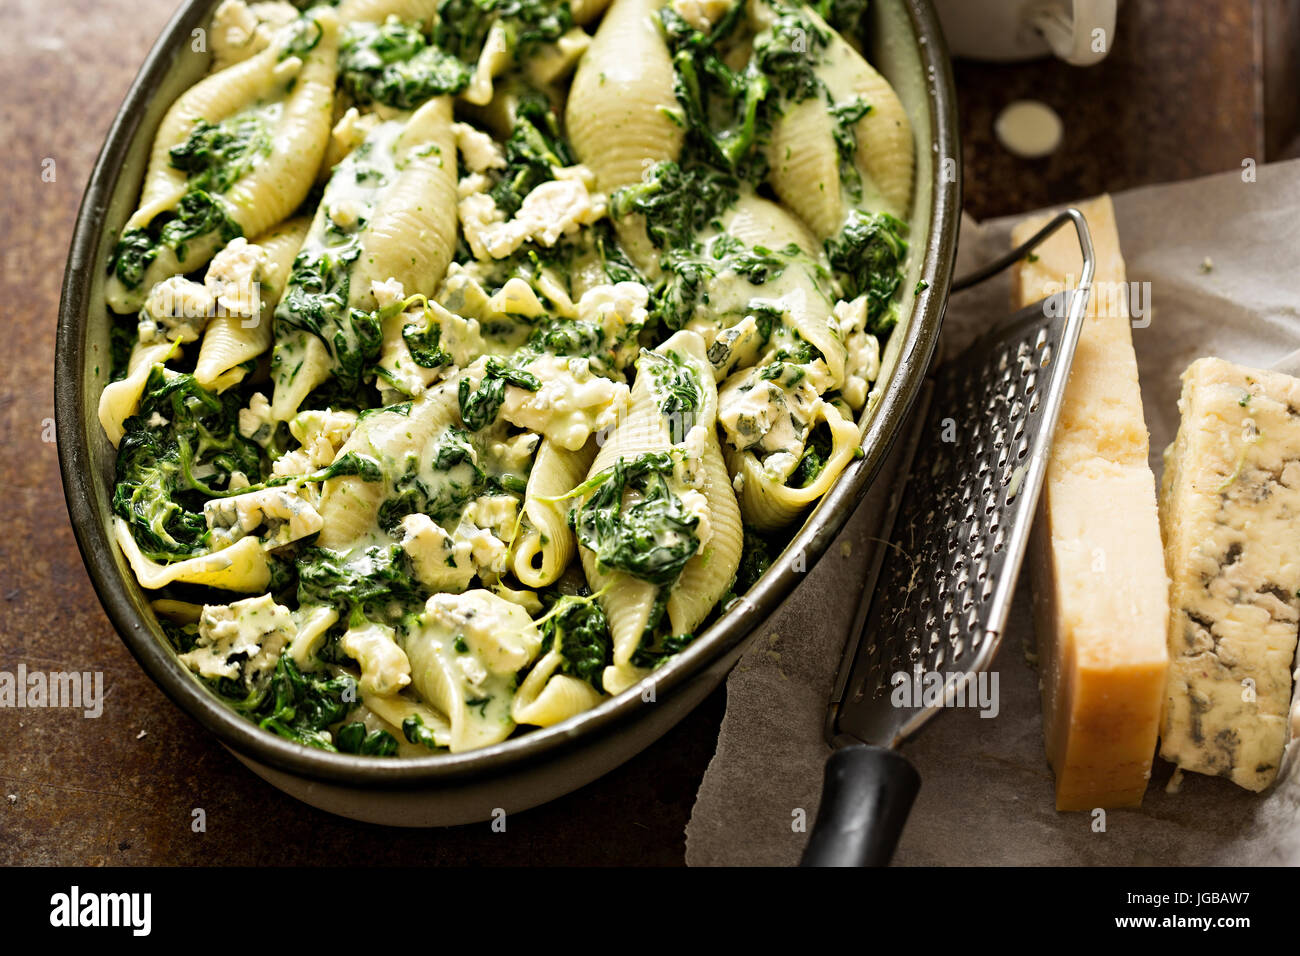 Spinach jumbo seashell pasta with parmesan and blue cheese oven ready bake Stock Photo